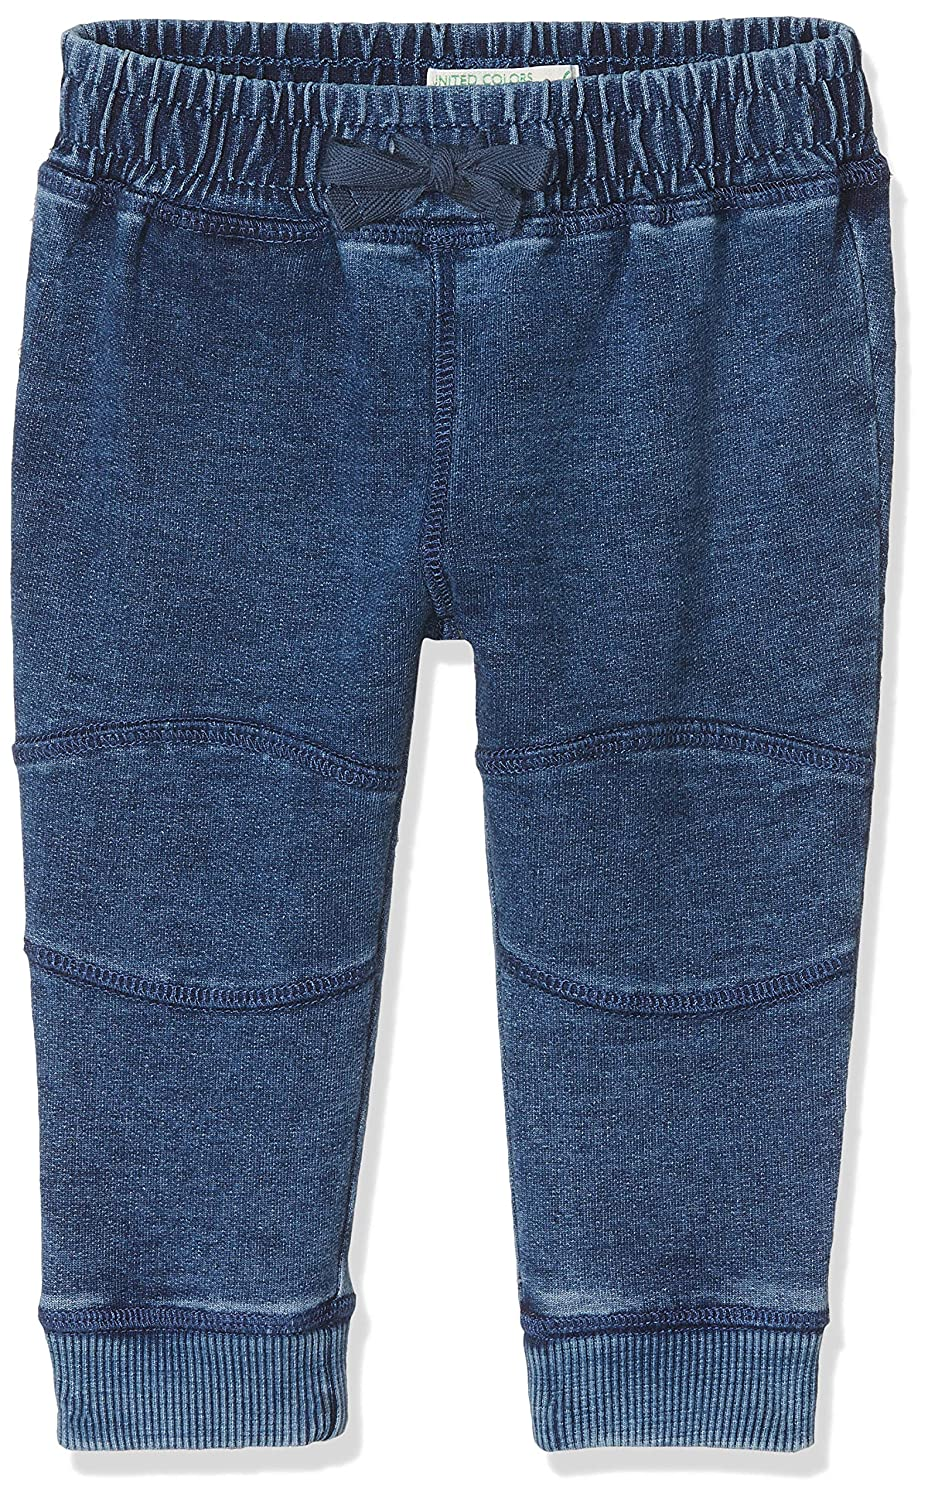 United Colors of Benetton Baby Boys Trouser 4BAY555AE